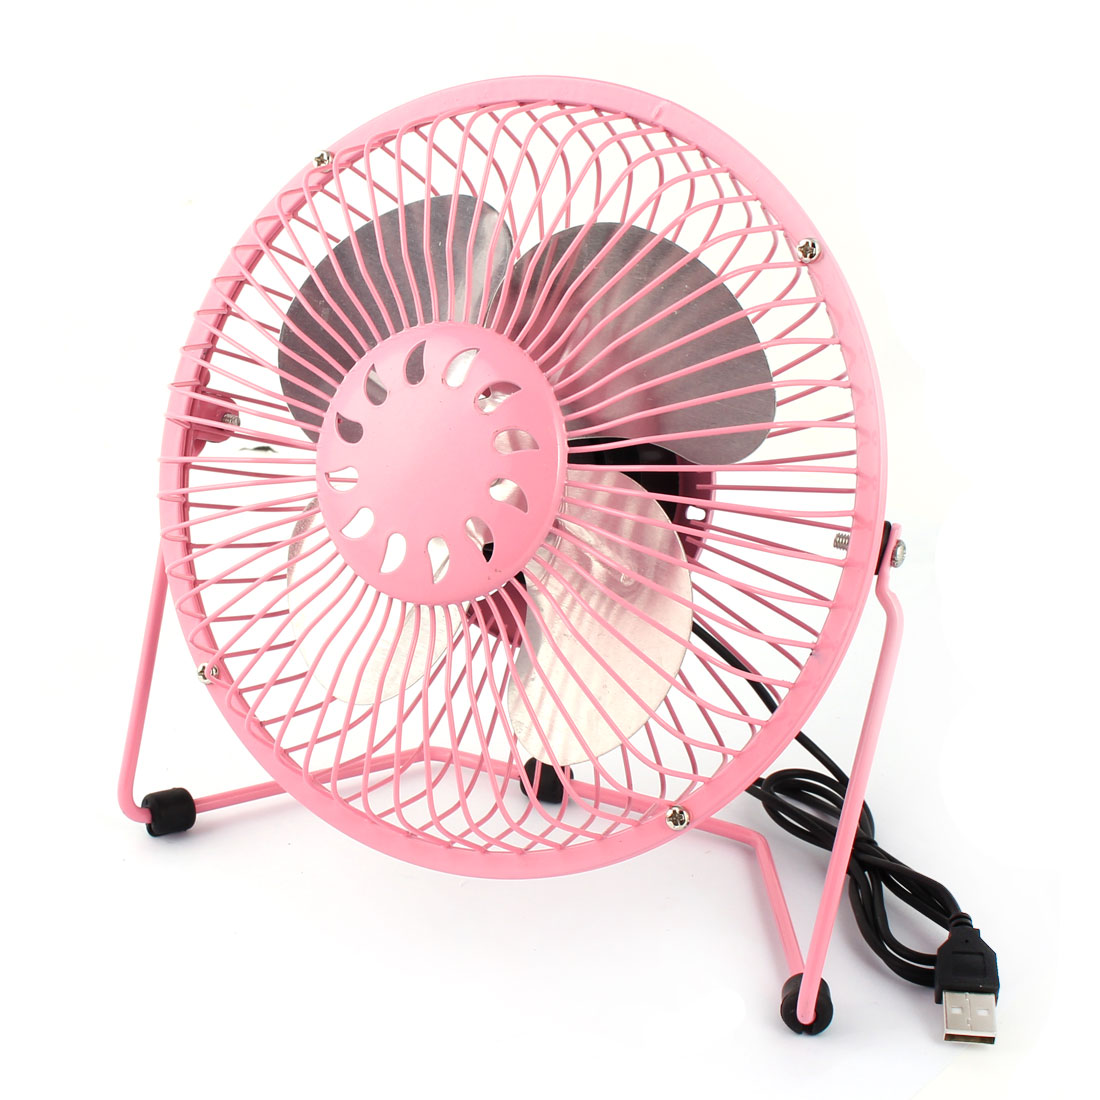 Computer Notebook Laptop Metal Portable USB Mini Cooler Cooling Fan Pink